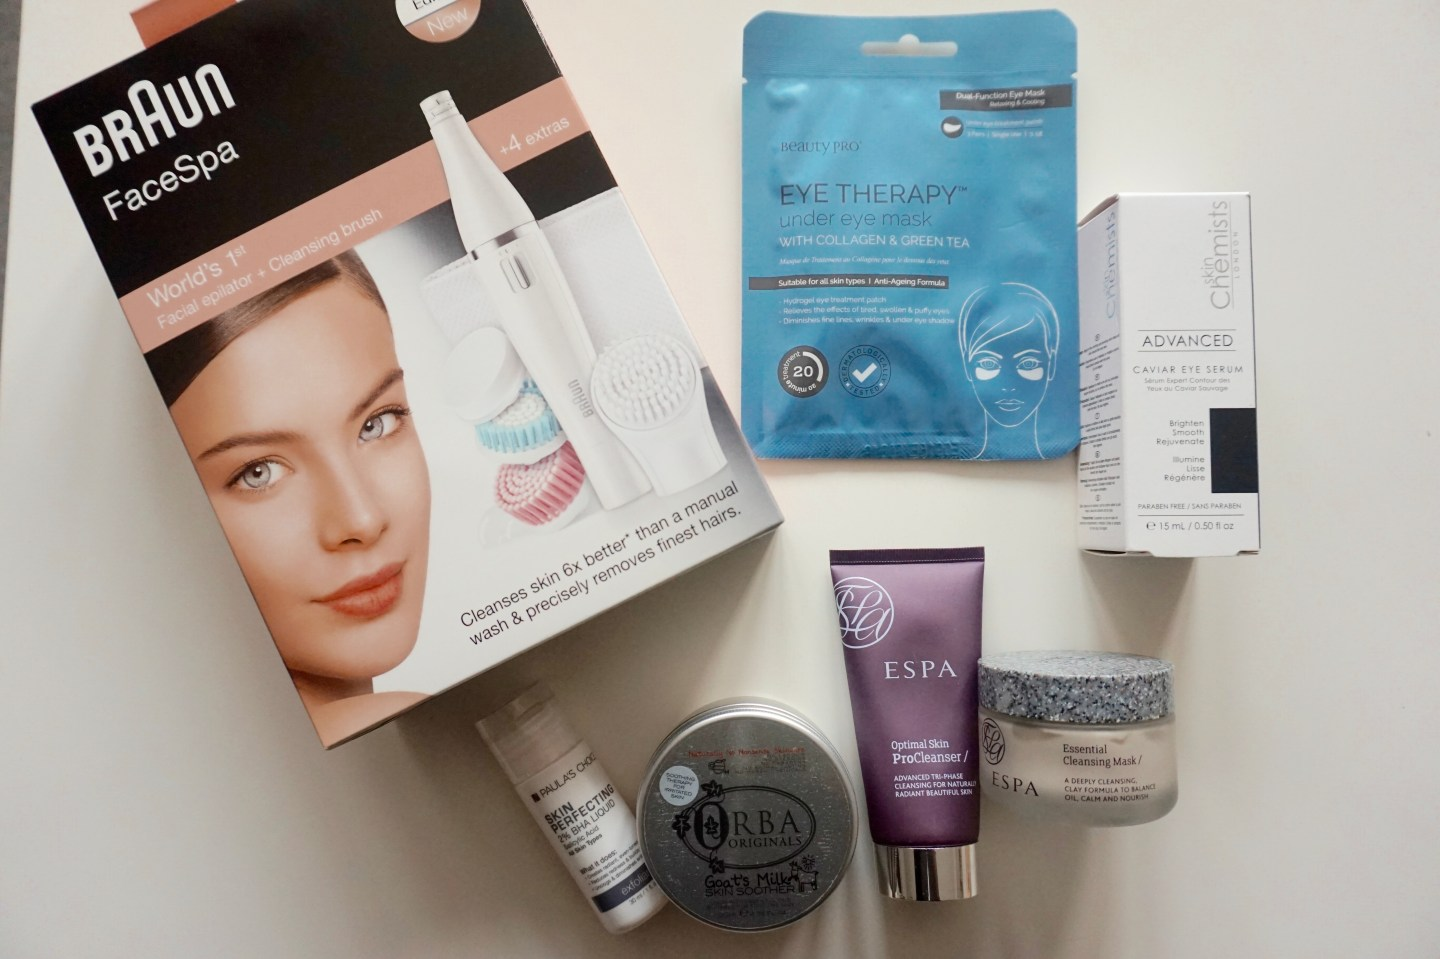 braun-facespa-cleanse-raychel-says-xmas-gift-guide